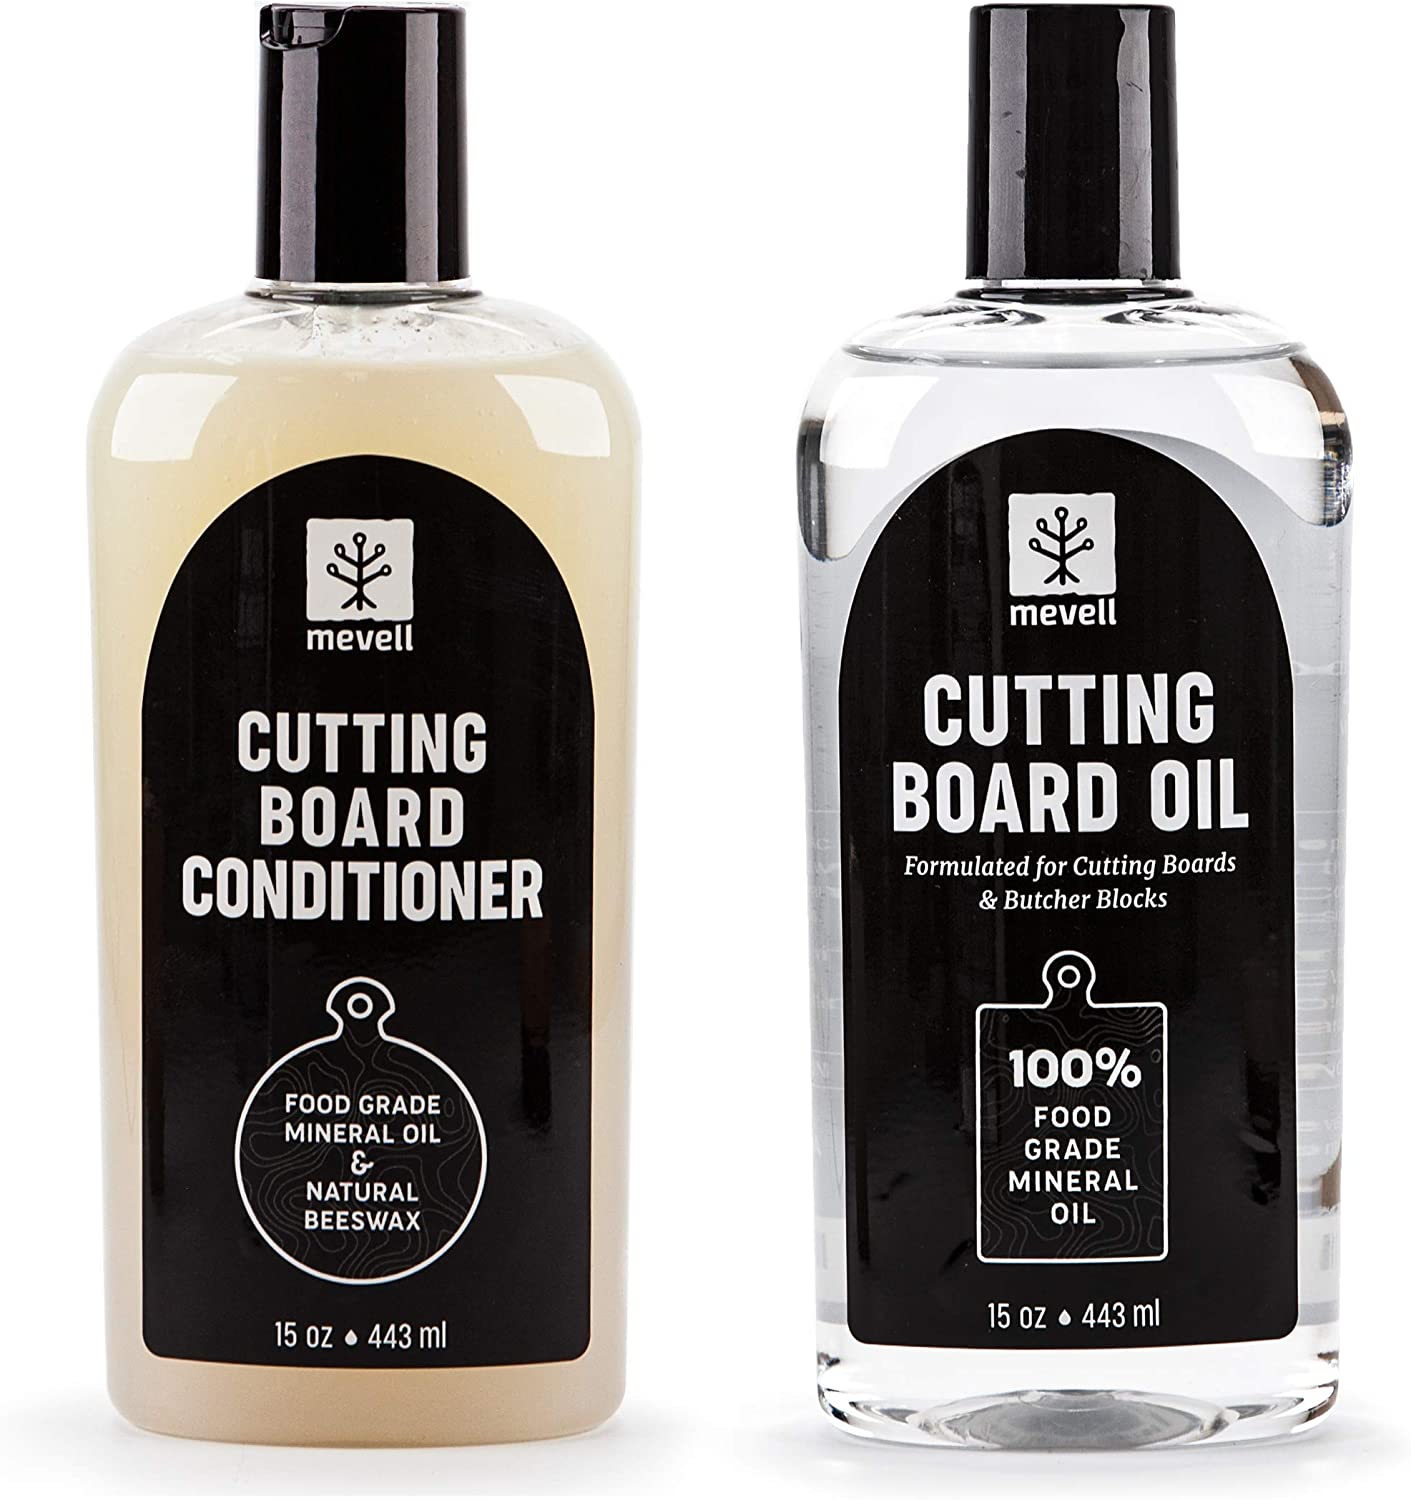 Mevell Cutting Board Oil and Wax Conditioner, Food Grade Mineral Oil and Natural Bees Wax Conditioner, Great for Butcher Blocks, Countertops, Wood Bowls and Utensils